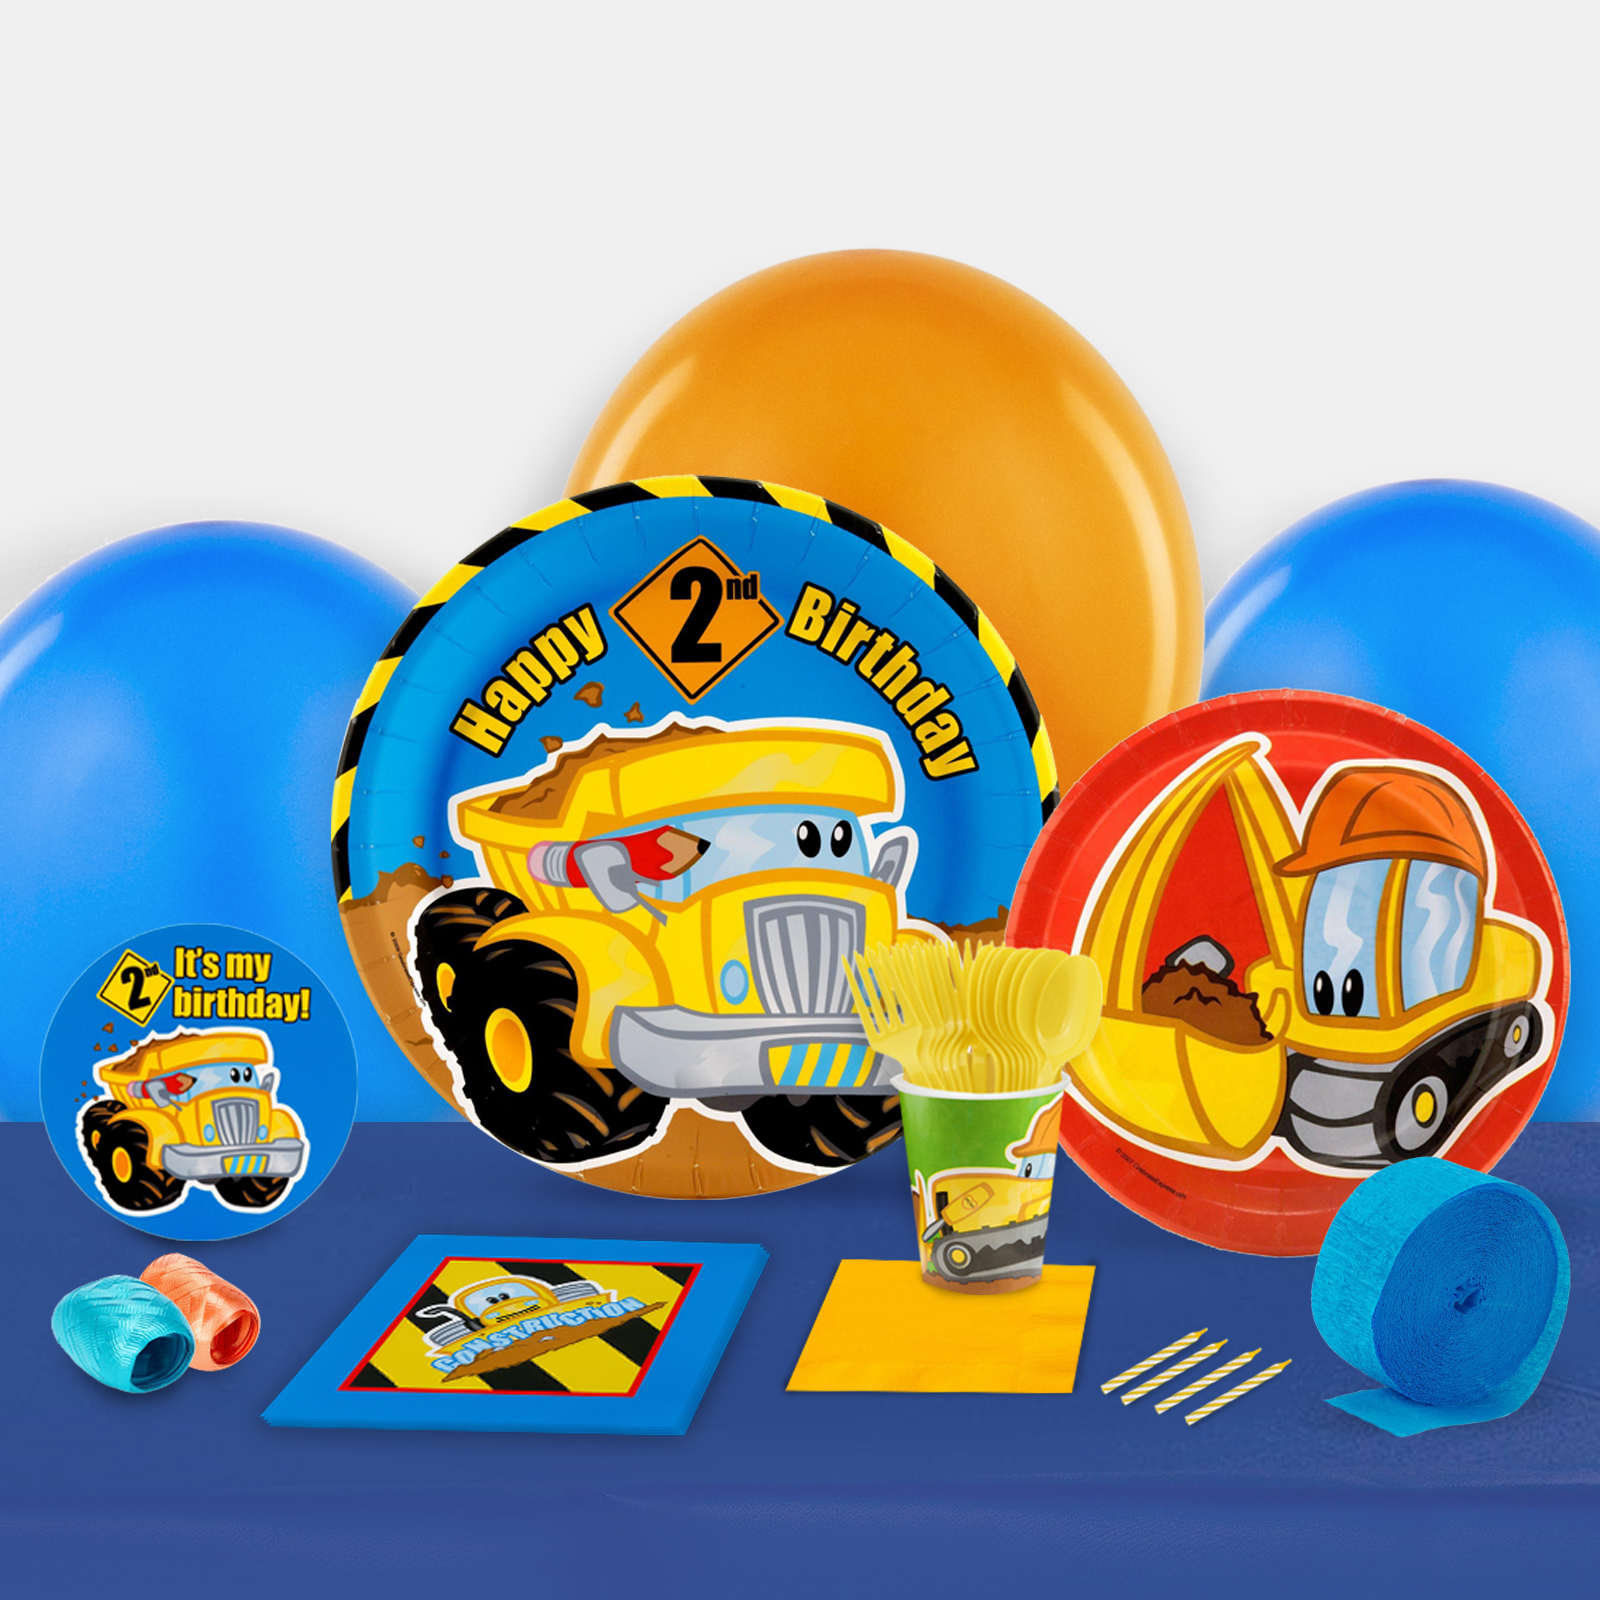 Construction Pals 2nd Birthday Party in a Box For 8-Basic